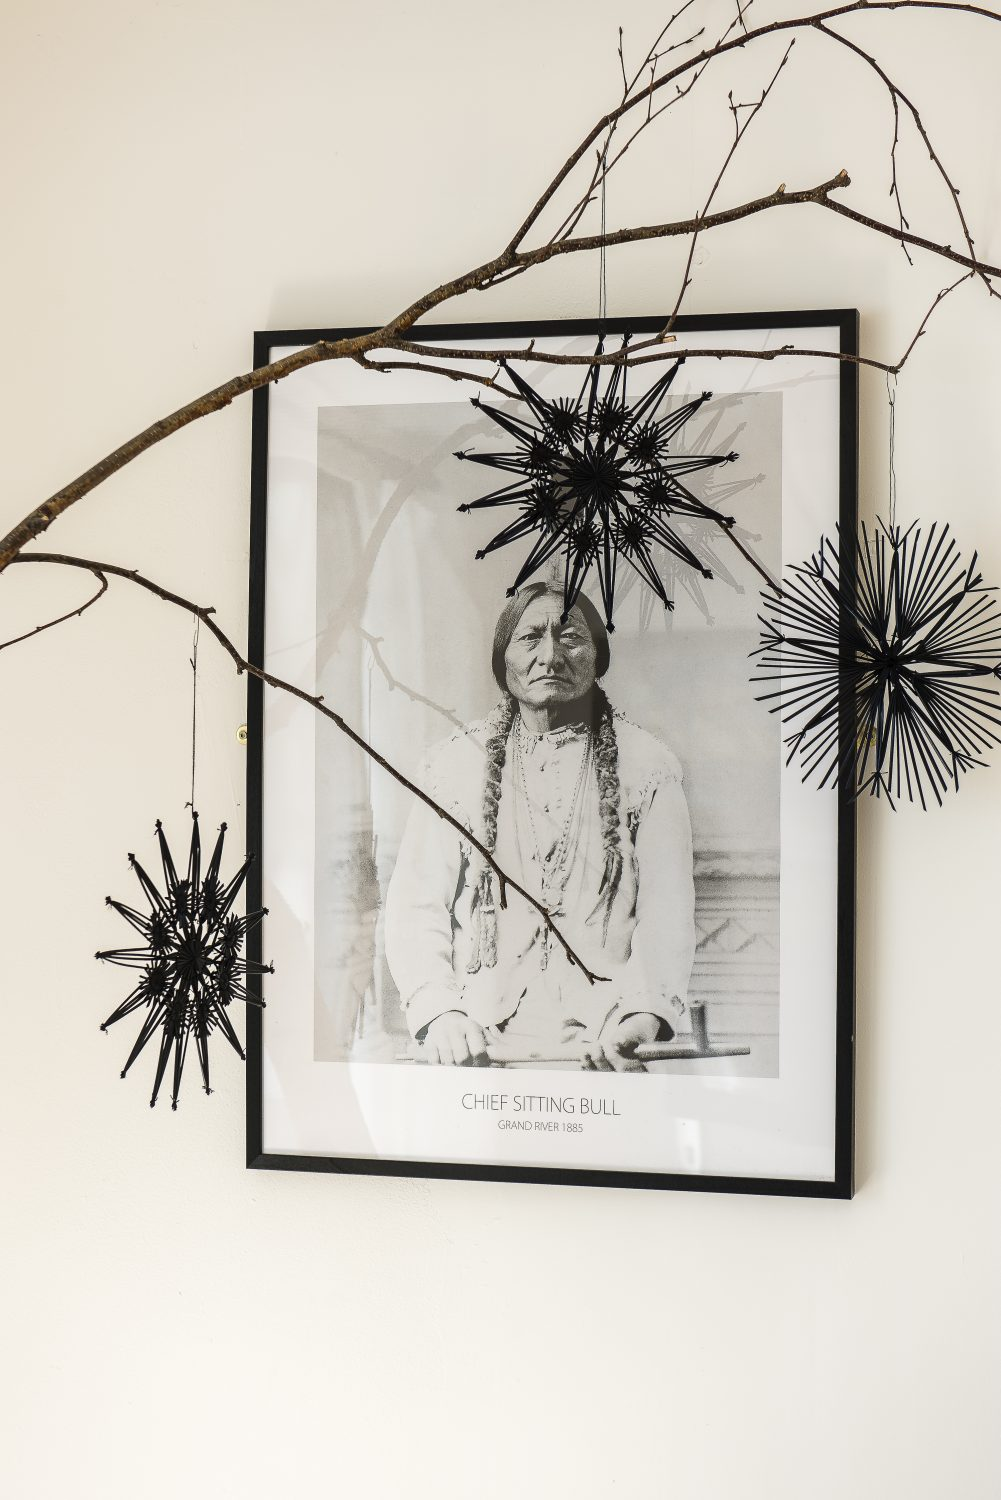 The portrait of Sioux Chief Sitting Bull is from desenio.co.uk